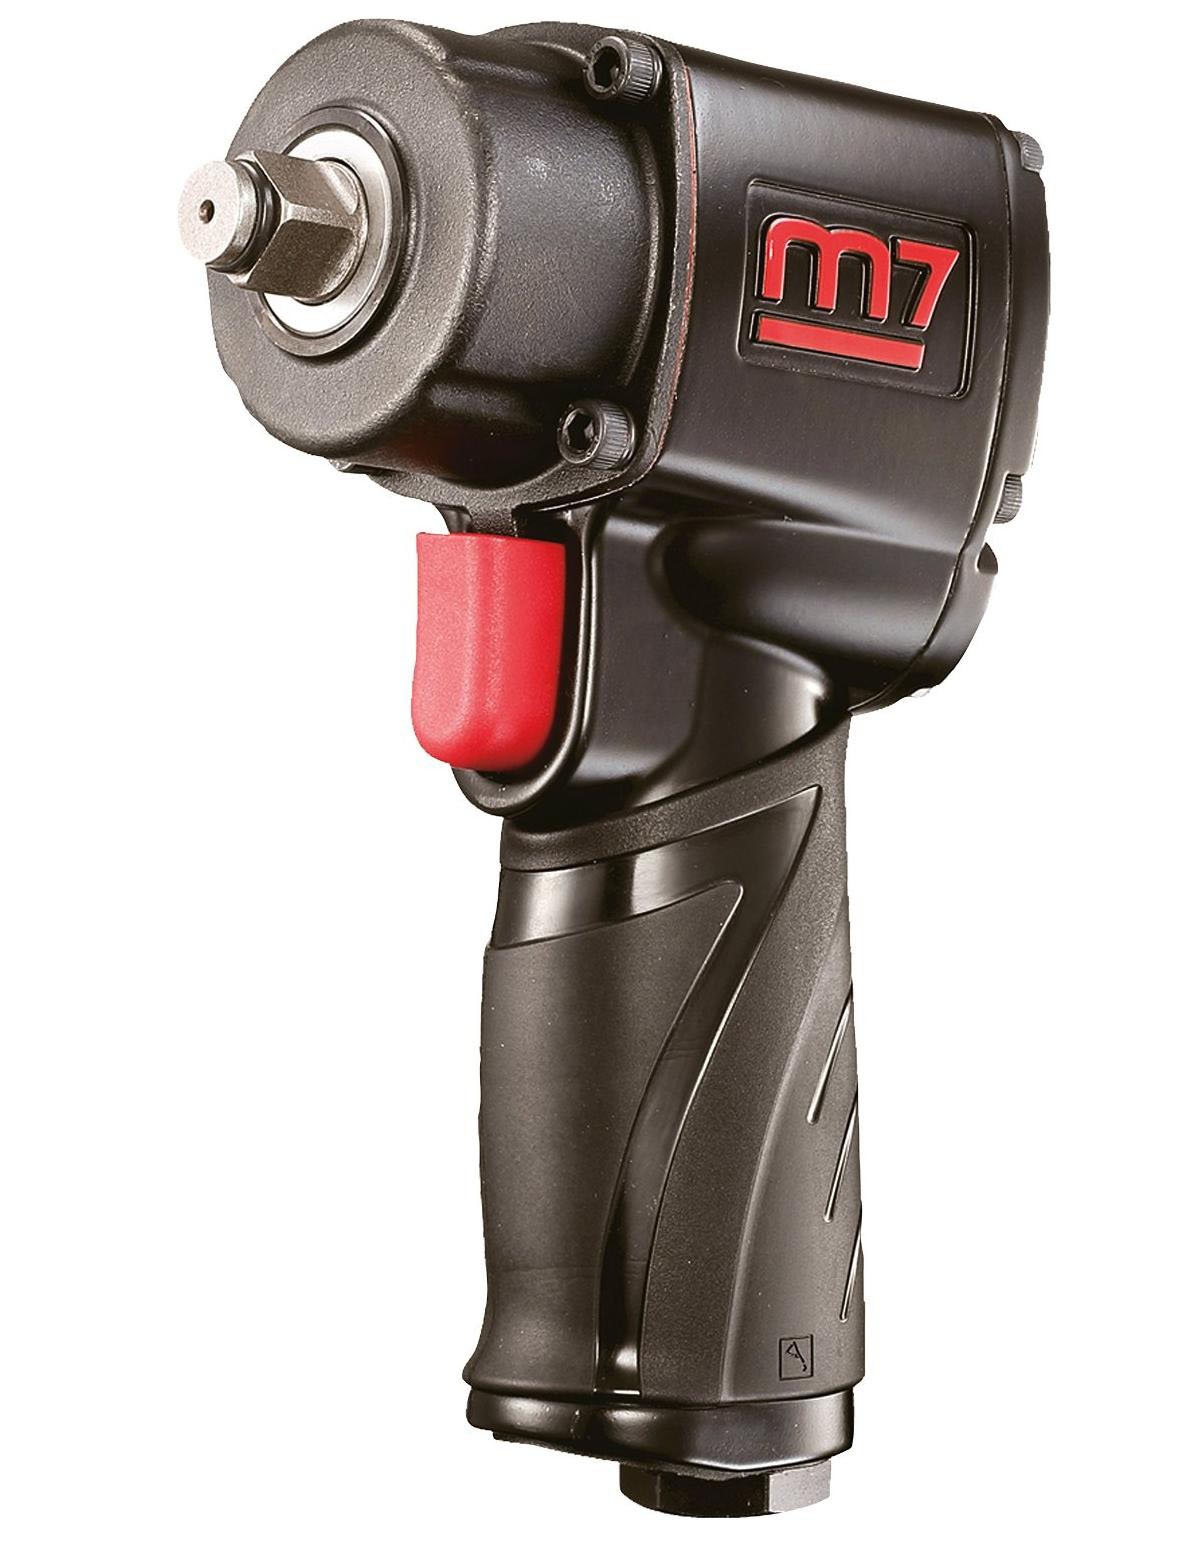 MIGHTY SEVEN NC-4610 - 1/2in Drive Air Impact Wrench; 450 FT-LB Max Torque